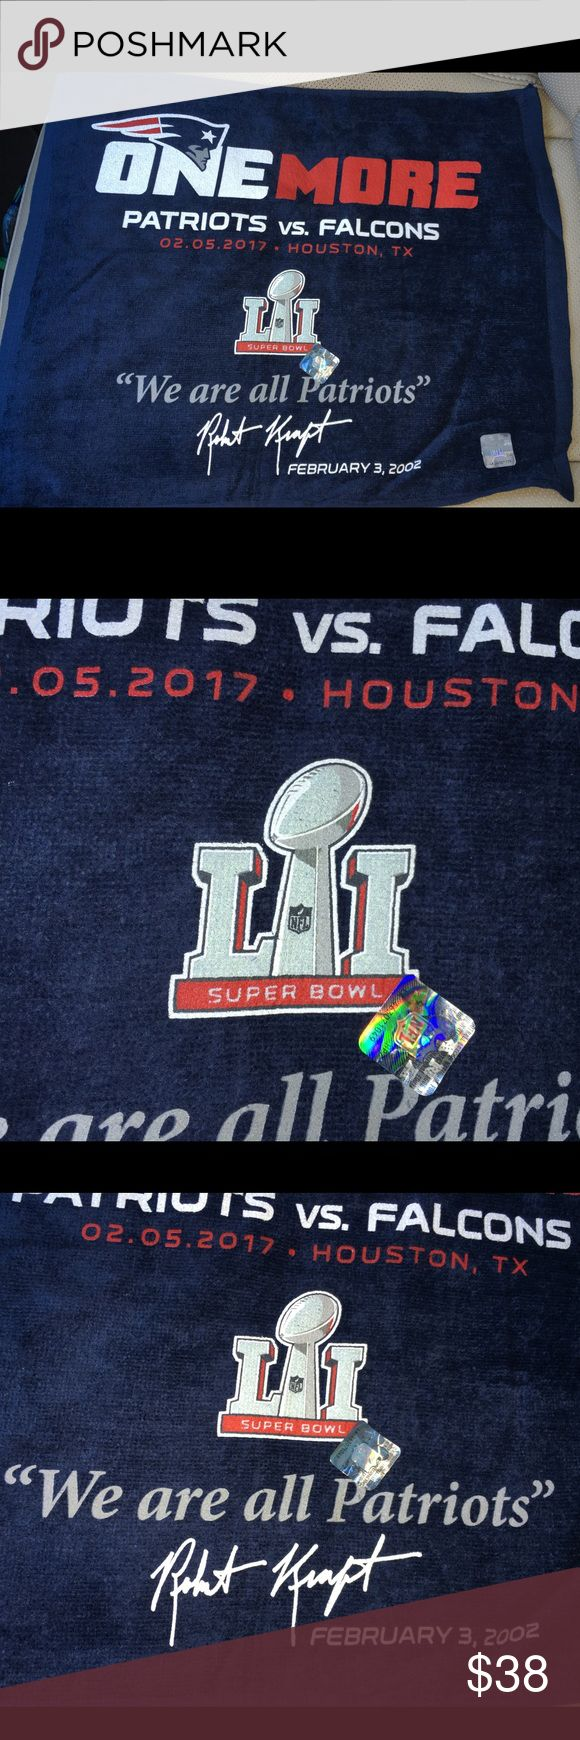 """Official Super Bowl 51 patriots rally towel for sale is the official, New England Patriots, Super Bowl 51, championship rally towel. Has the Super Bowl logo, the site of the Super Bowl, Houston, Tx, official NFL hologram & the date of the Super Bowl 2/5/17. The towel is red white and blue   Tom Brady winning his 5th title!  """"ONE MORE""""  At the bottom has the quote by patriots owner Robert craft, """"We are all patriots"""" with a print of his signature  If you have any questions or would like…"""